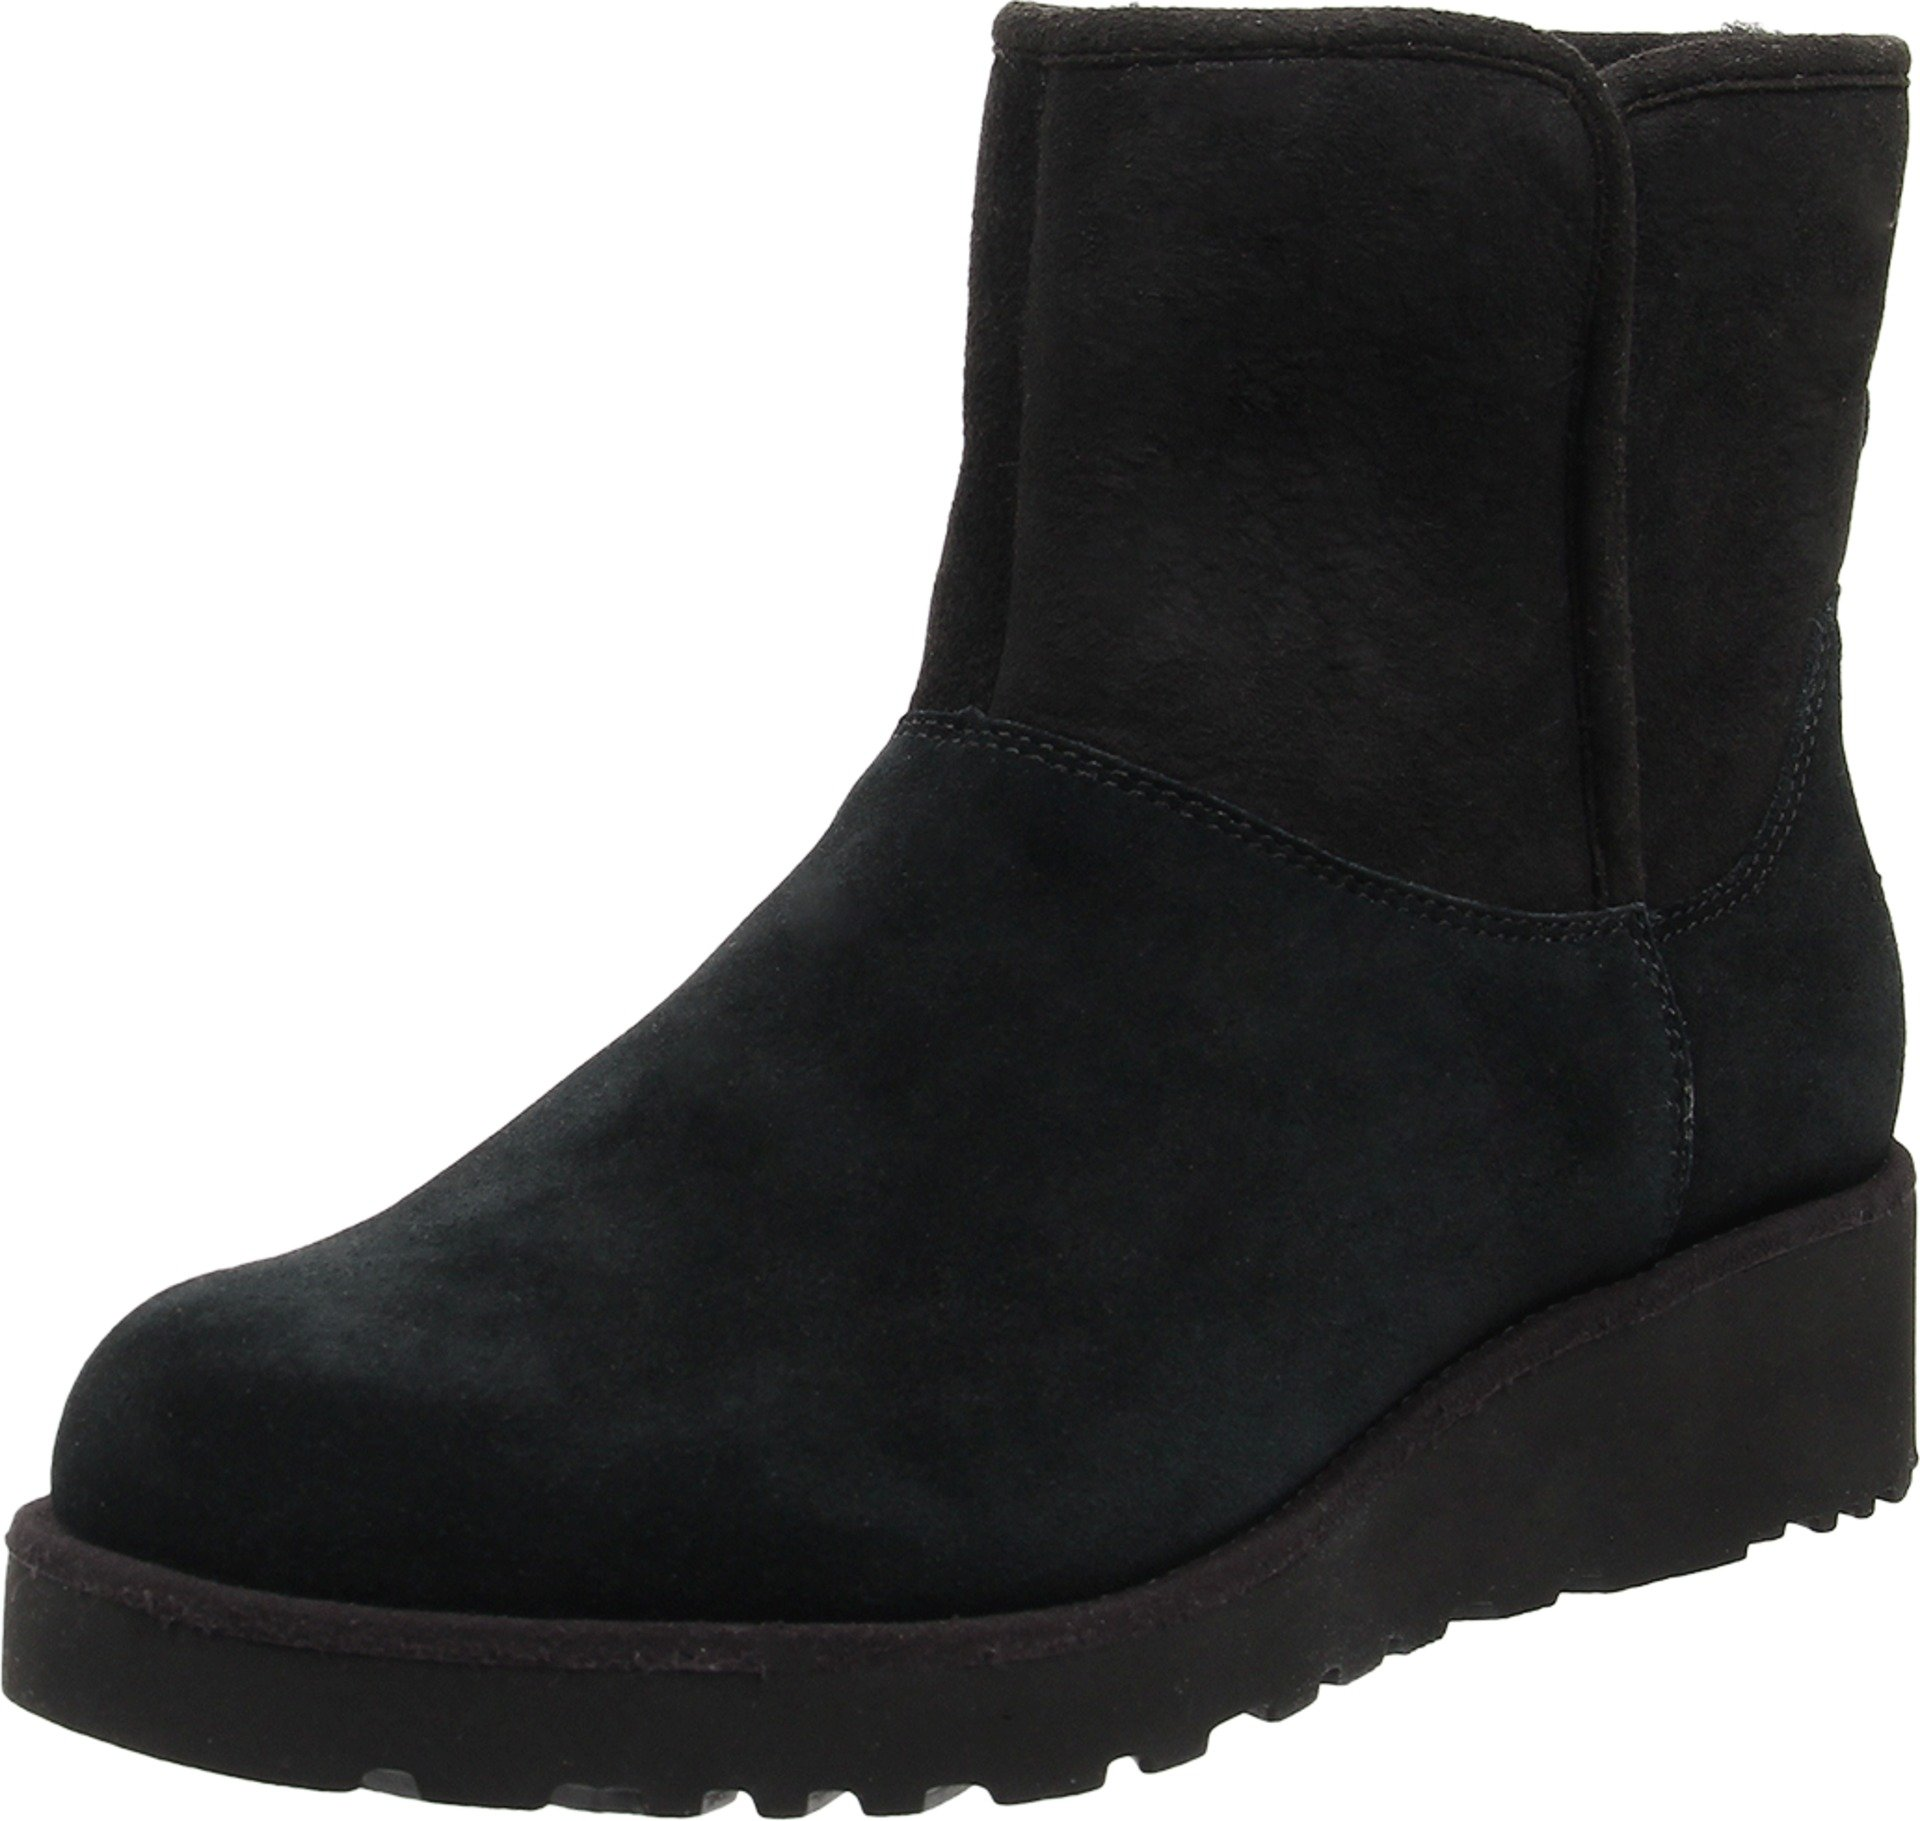 UGG Women's Kristin Winter Boot, Black, 8 B US